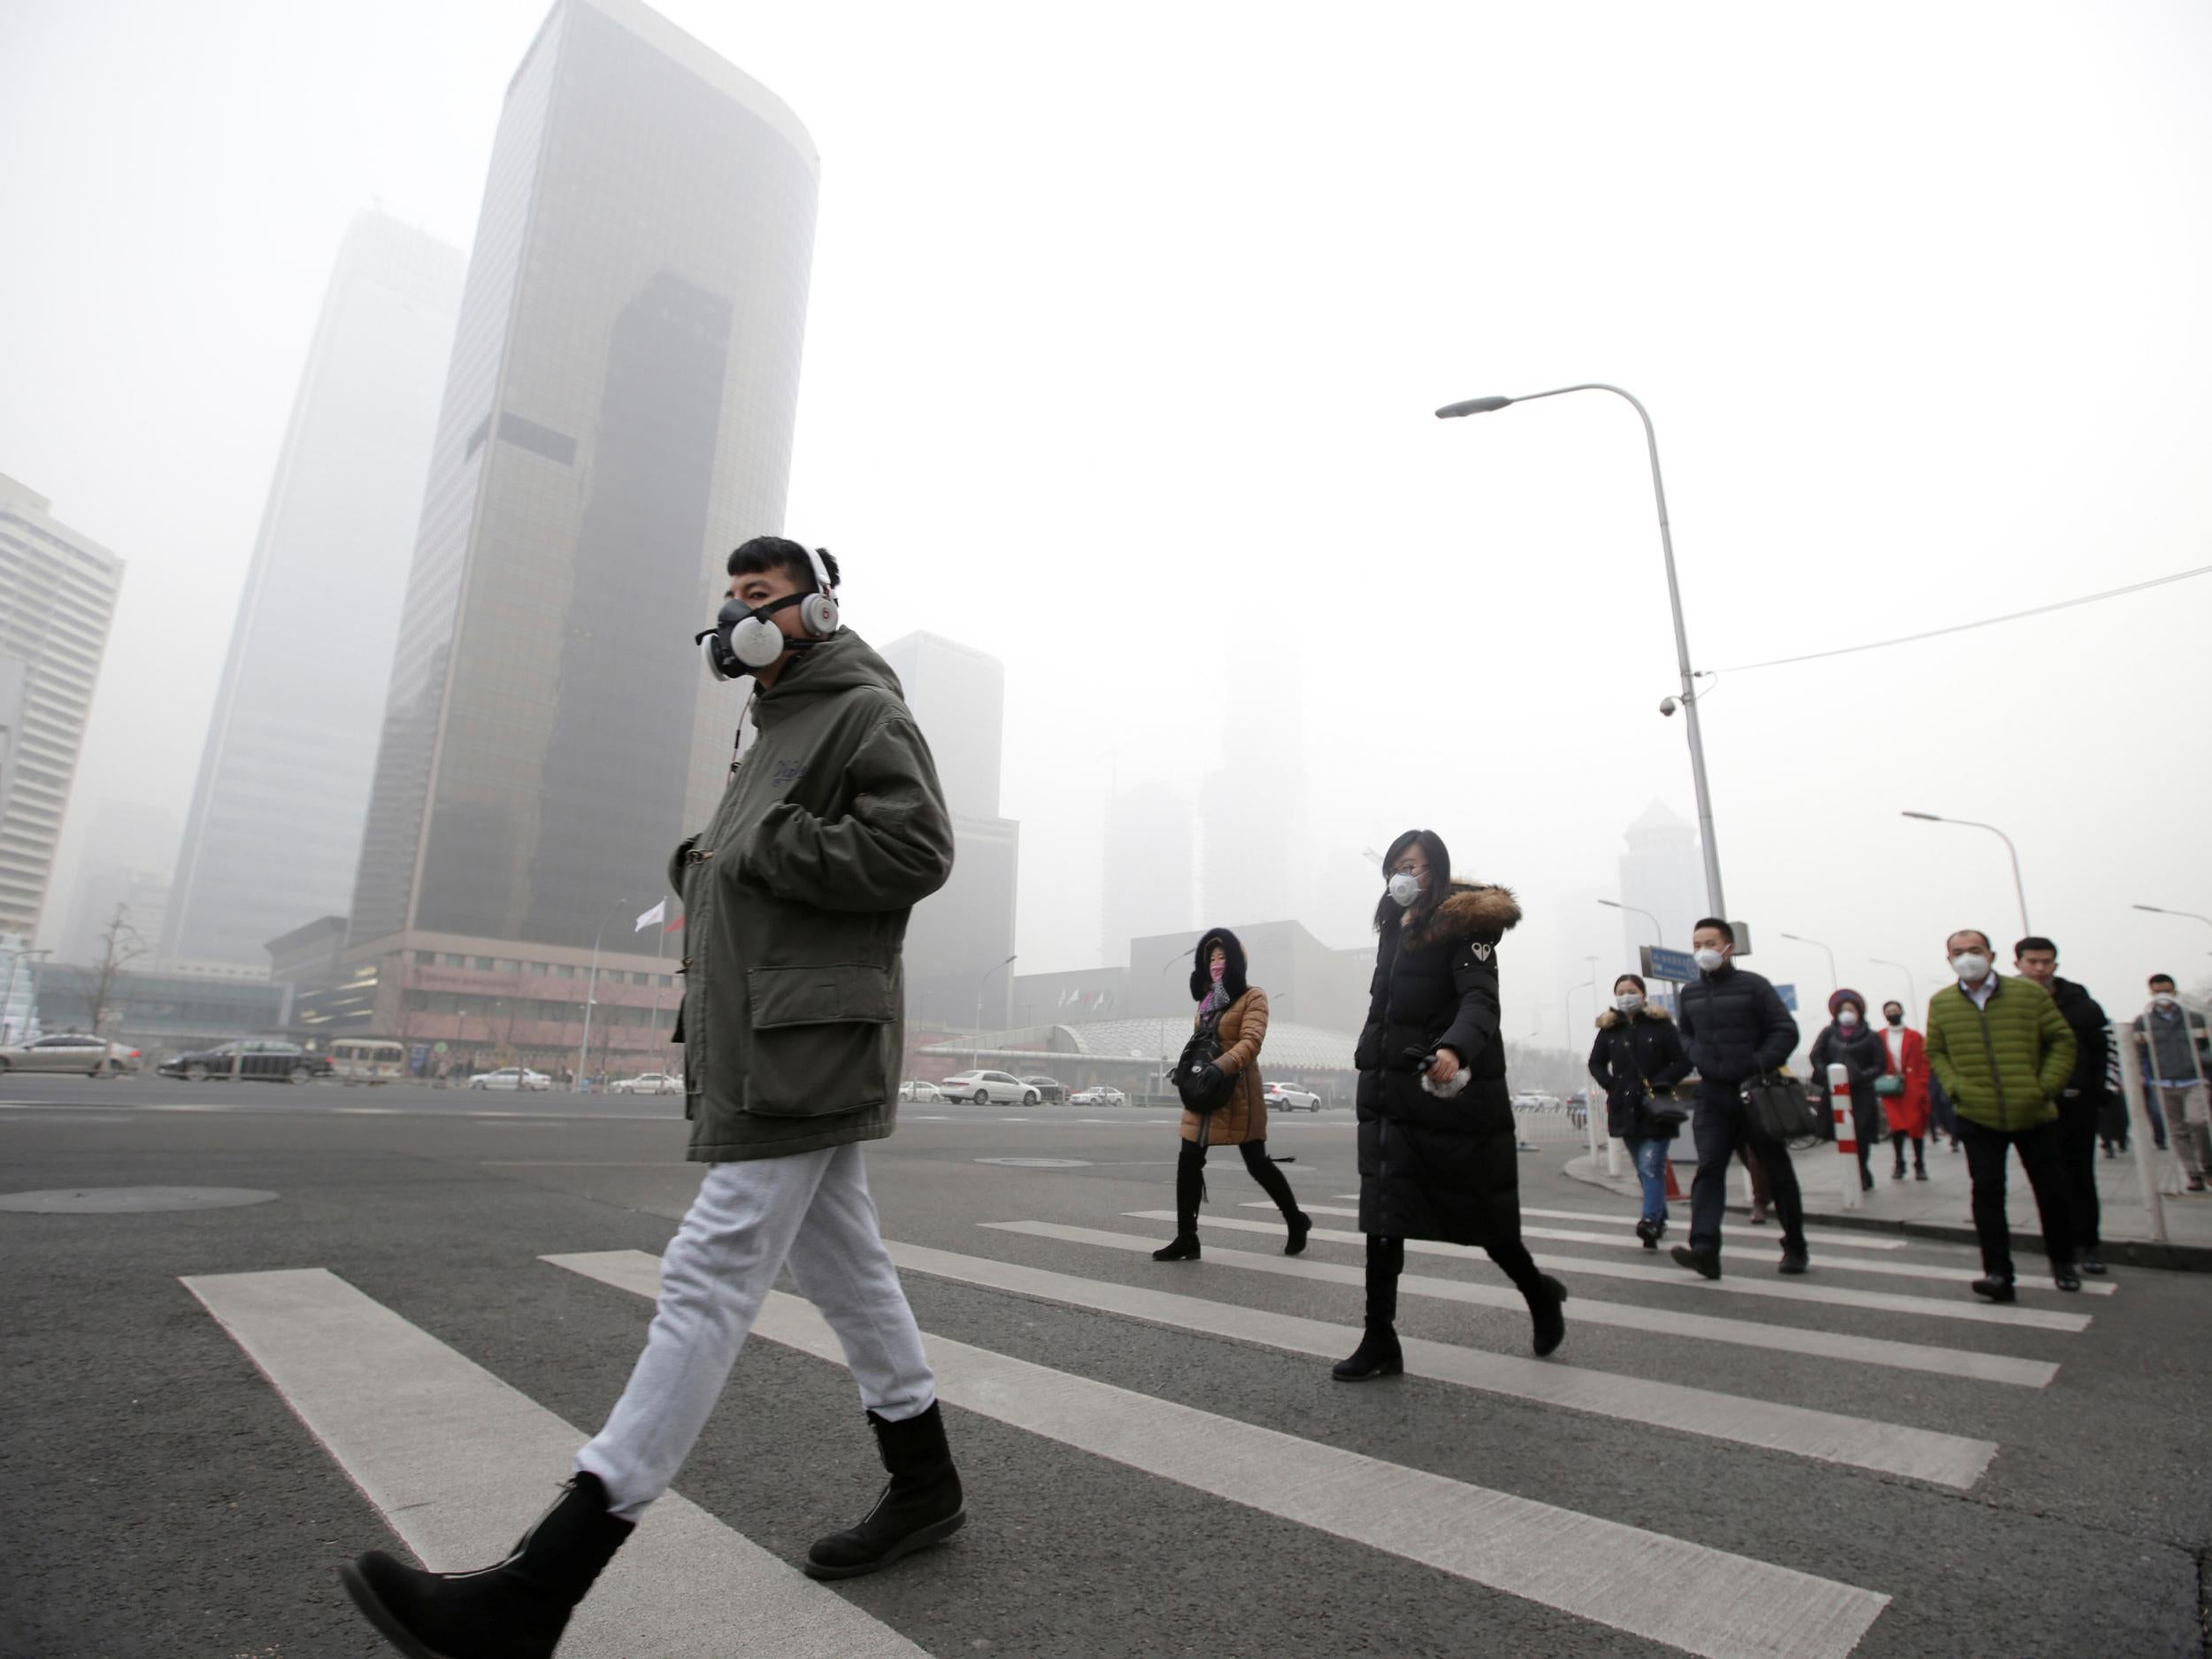 European smog could be 27 times more toxic than air pollution in China